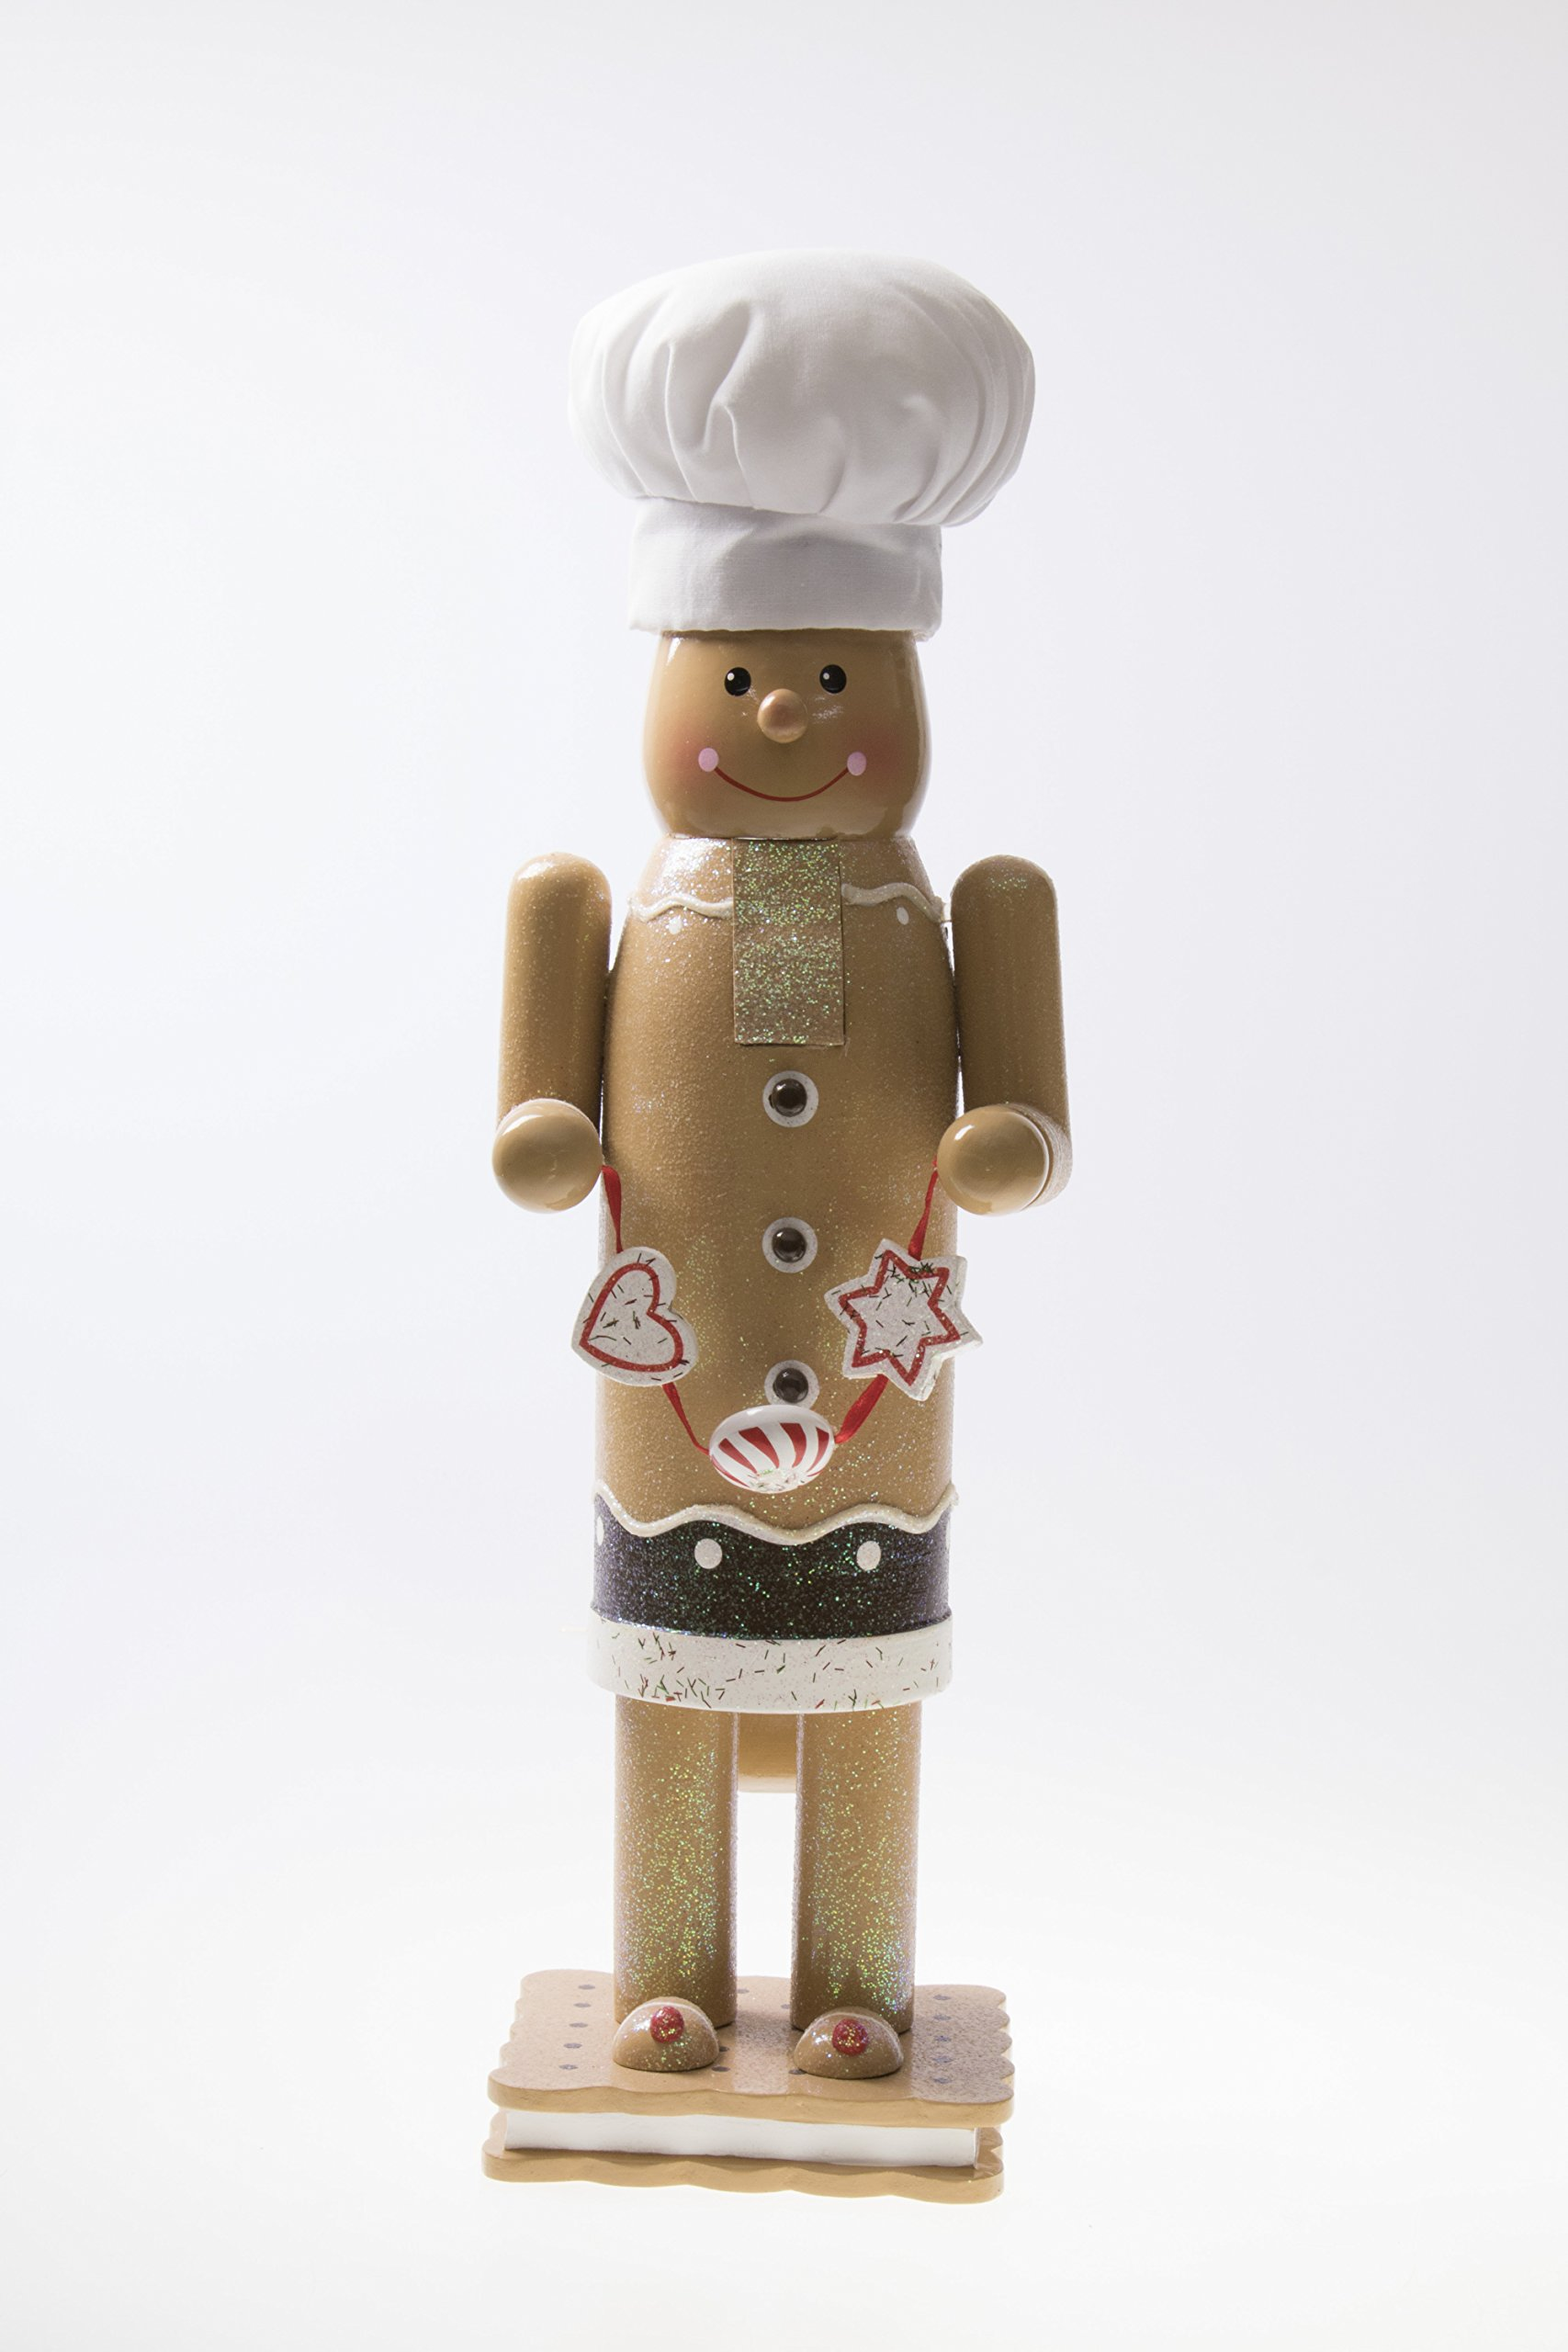 Traditional Christmas Gingerbread Man Nutcracker by Clever Creations | White Chef's Hat | Graham Cracker S'more Base | 14'' Tall Perfect for Shelves and Tables | Collectible Wooden Nutcracker